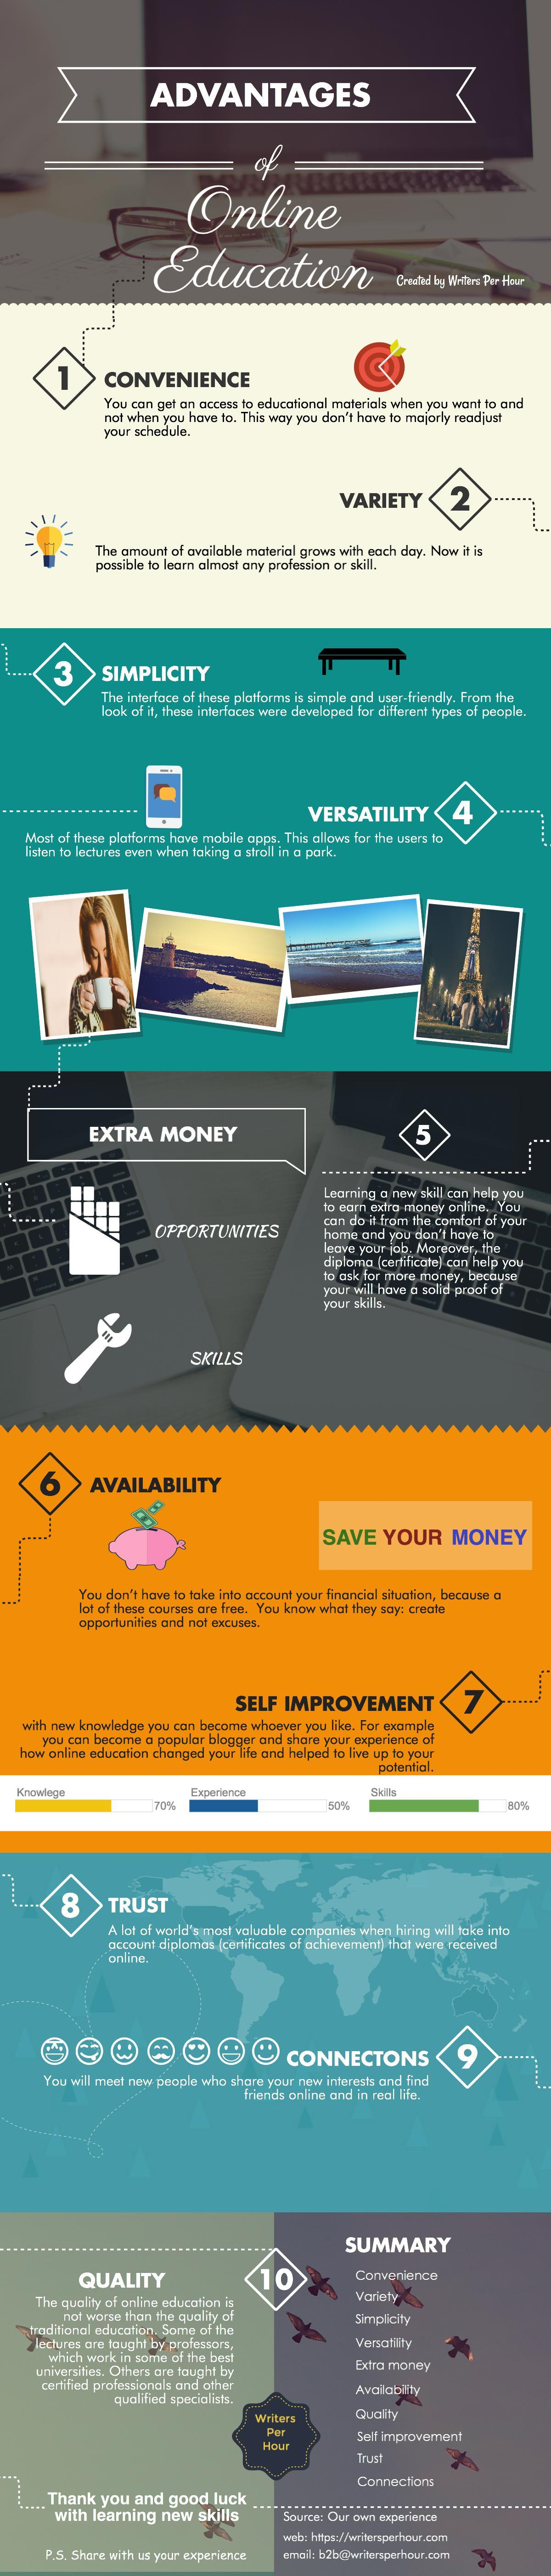 Top 10 Advantages of Online Education Infographic